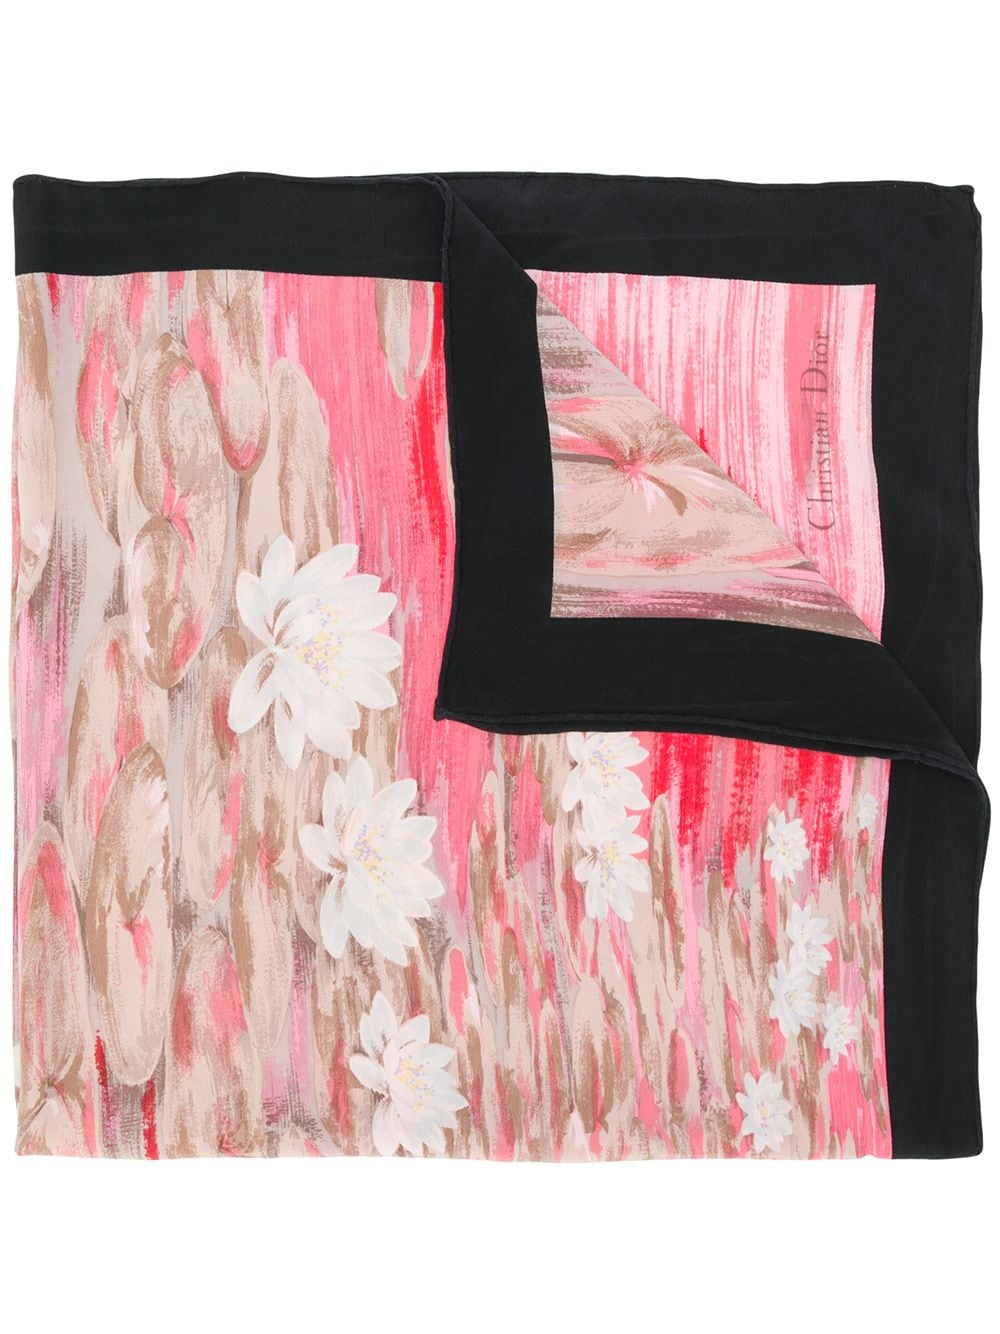 christian-dior-pre-owned-floral-print-foulard